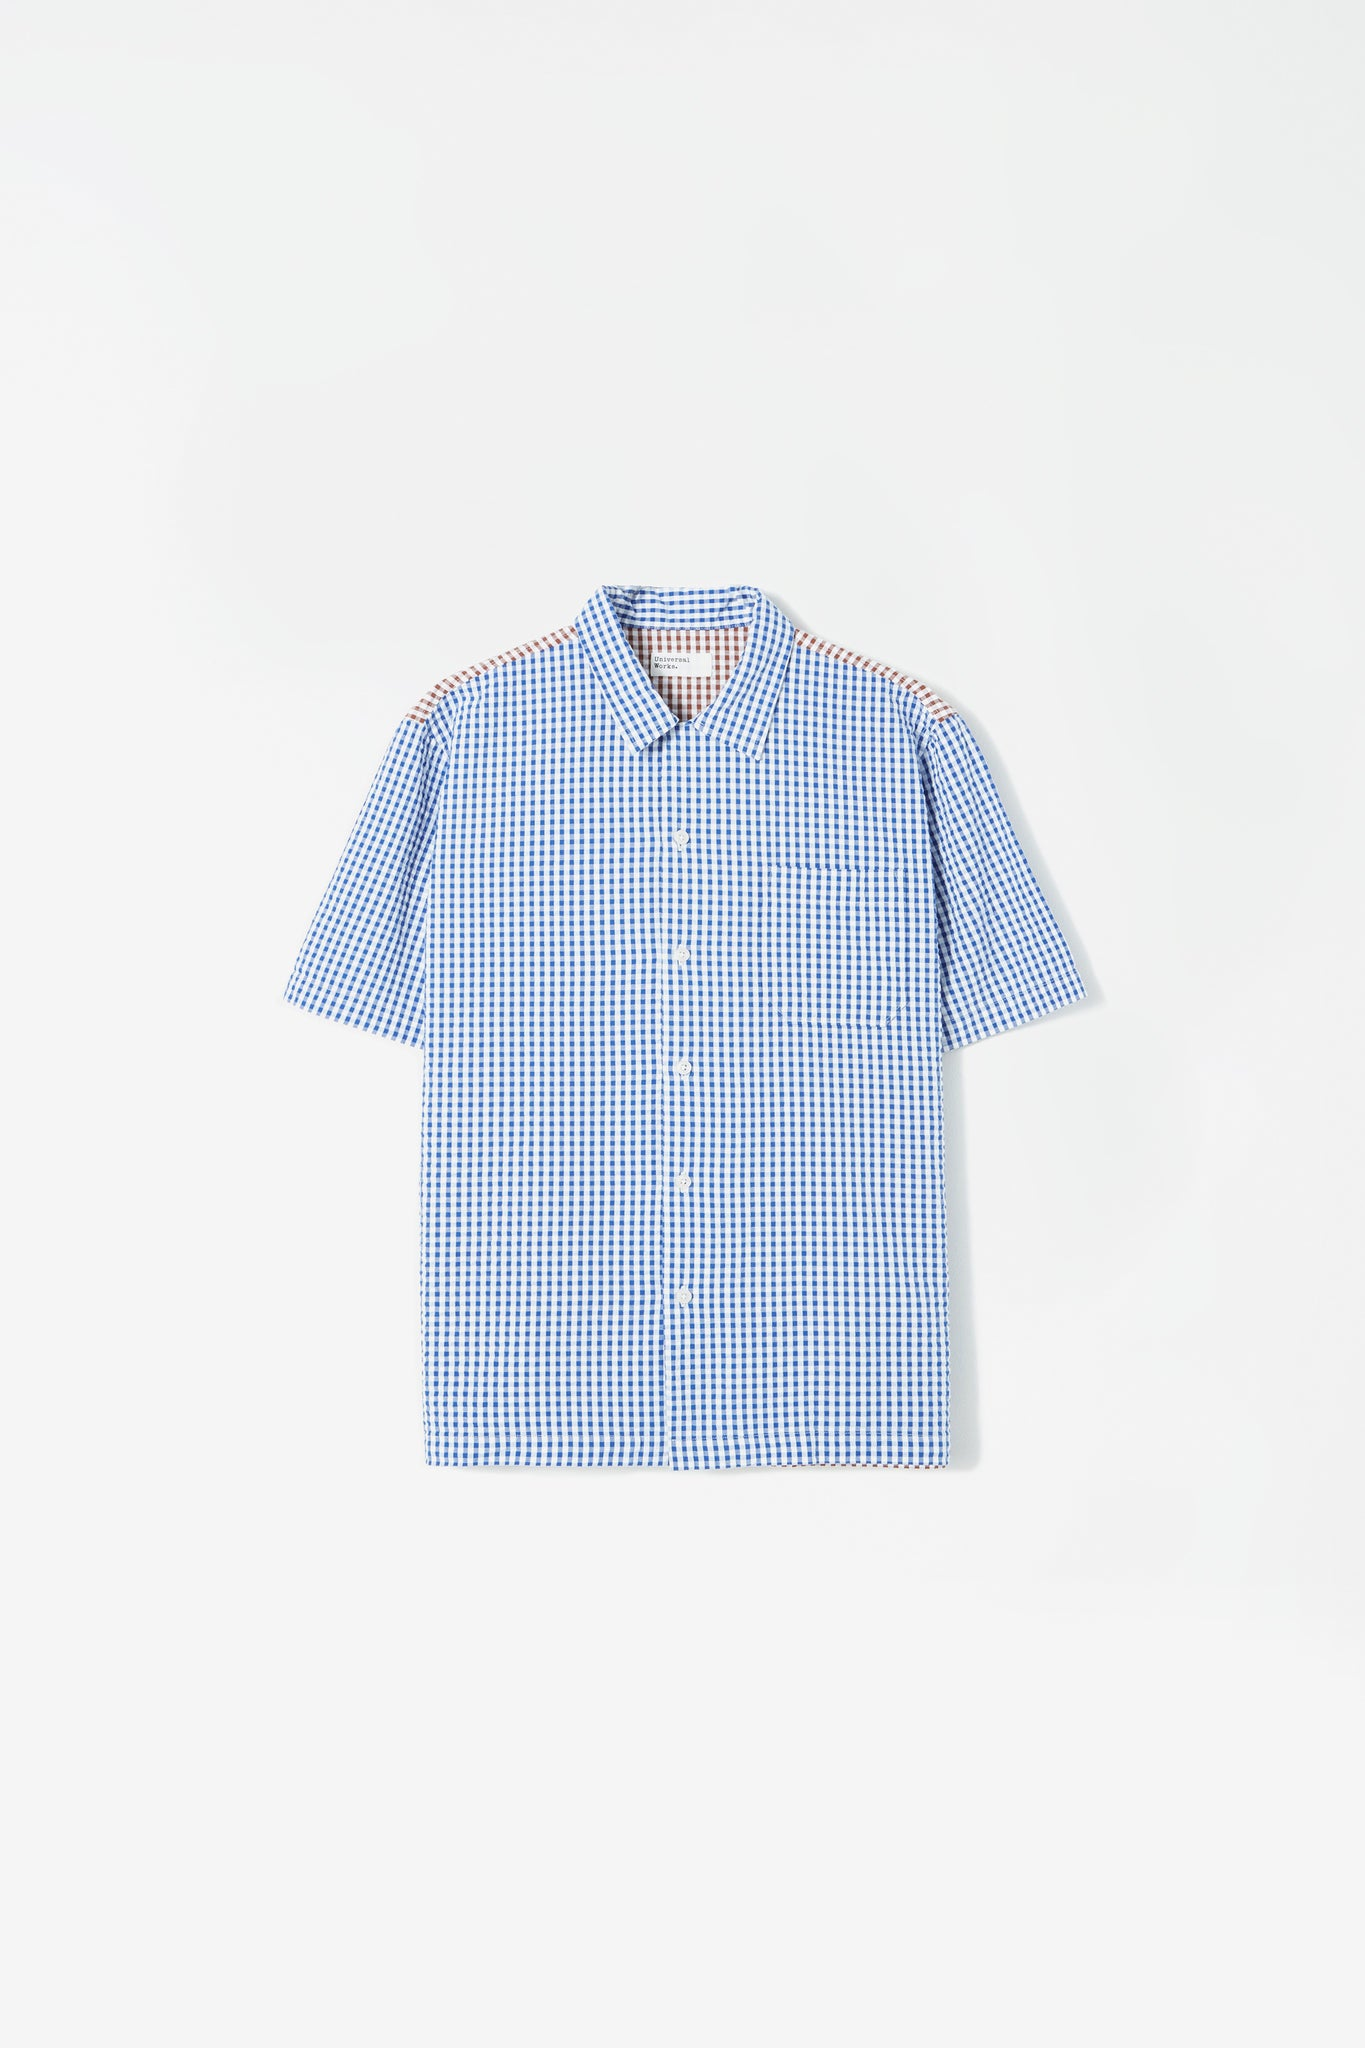 Road shirt gingham blue/brown